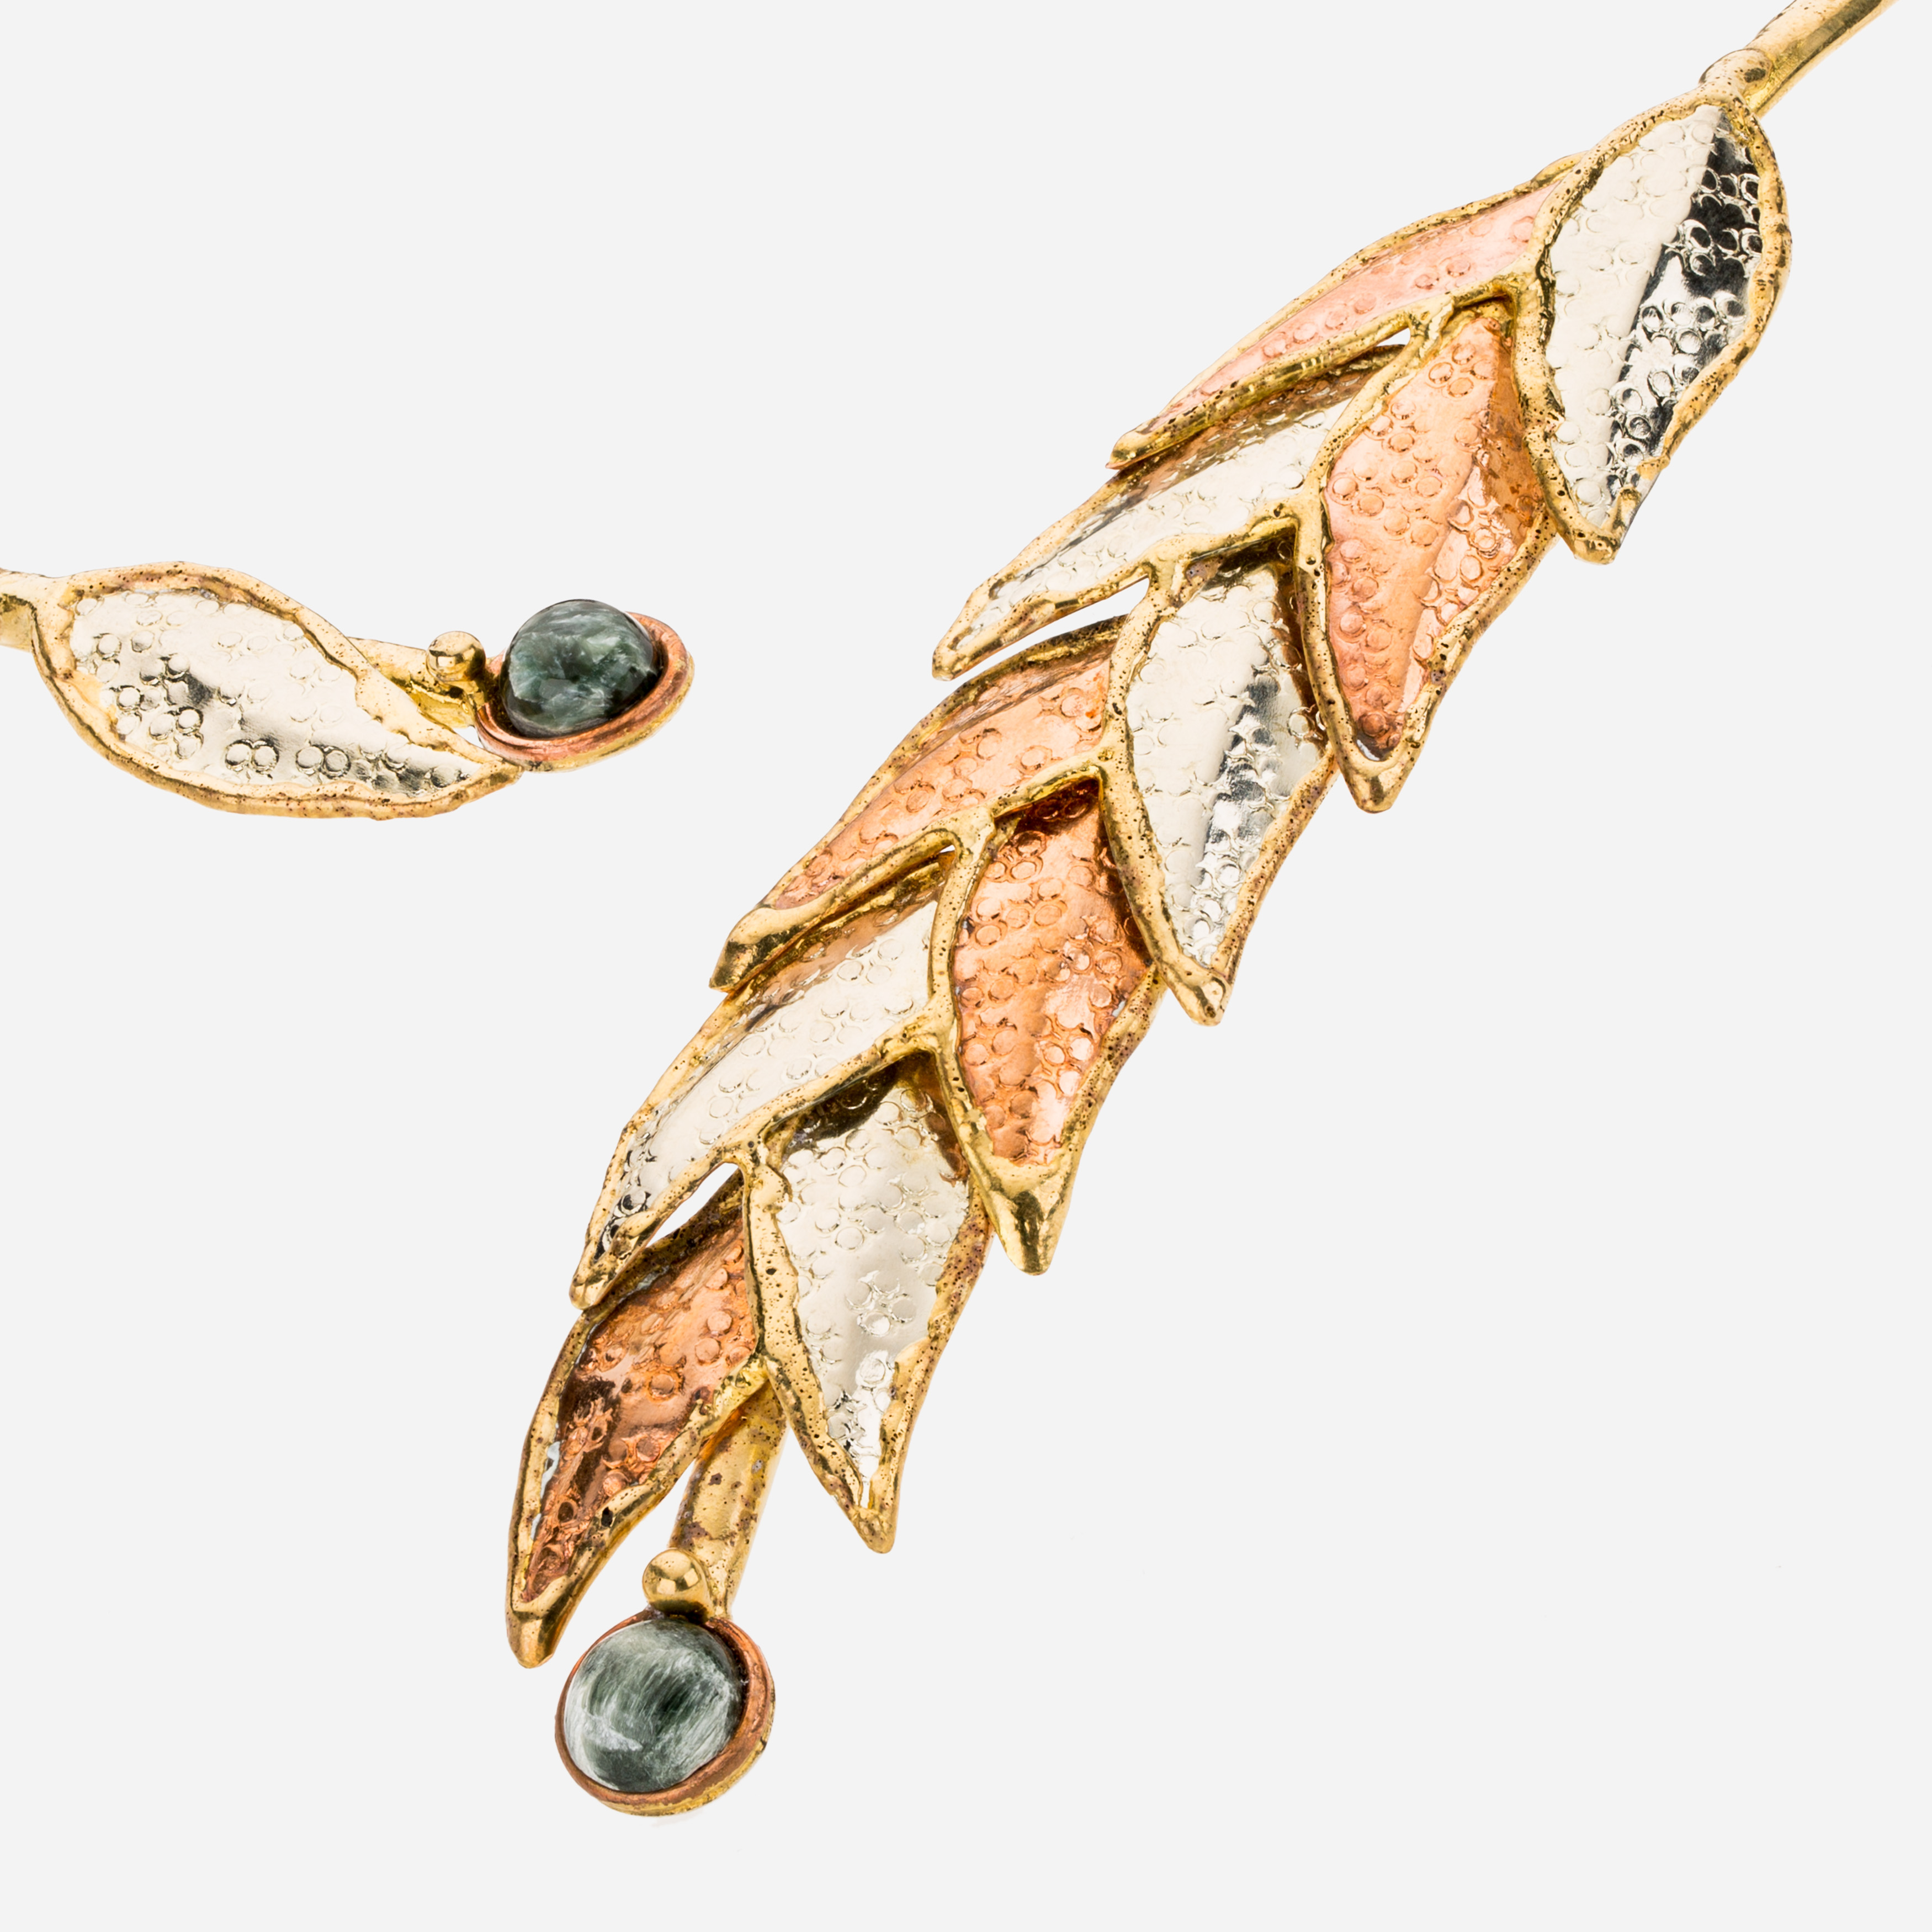 Tara Mesa Moss Agate Leaf Collar Necklace Crafted in German Silver—Brass and Copper